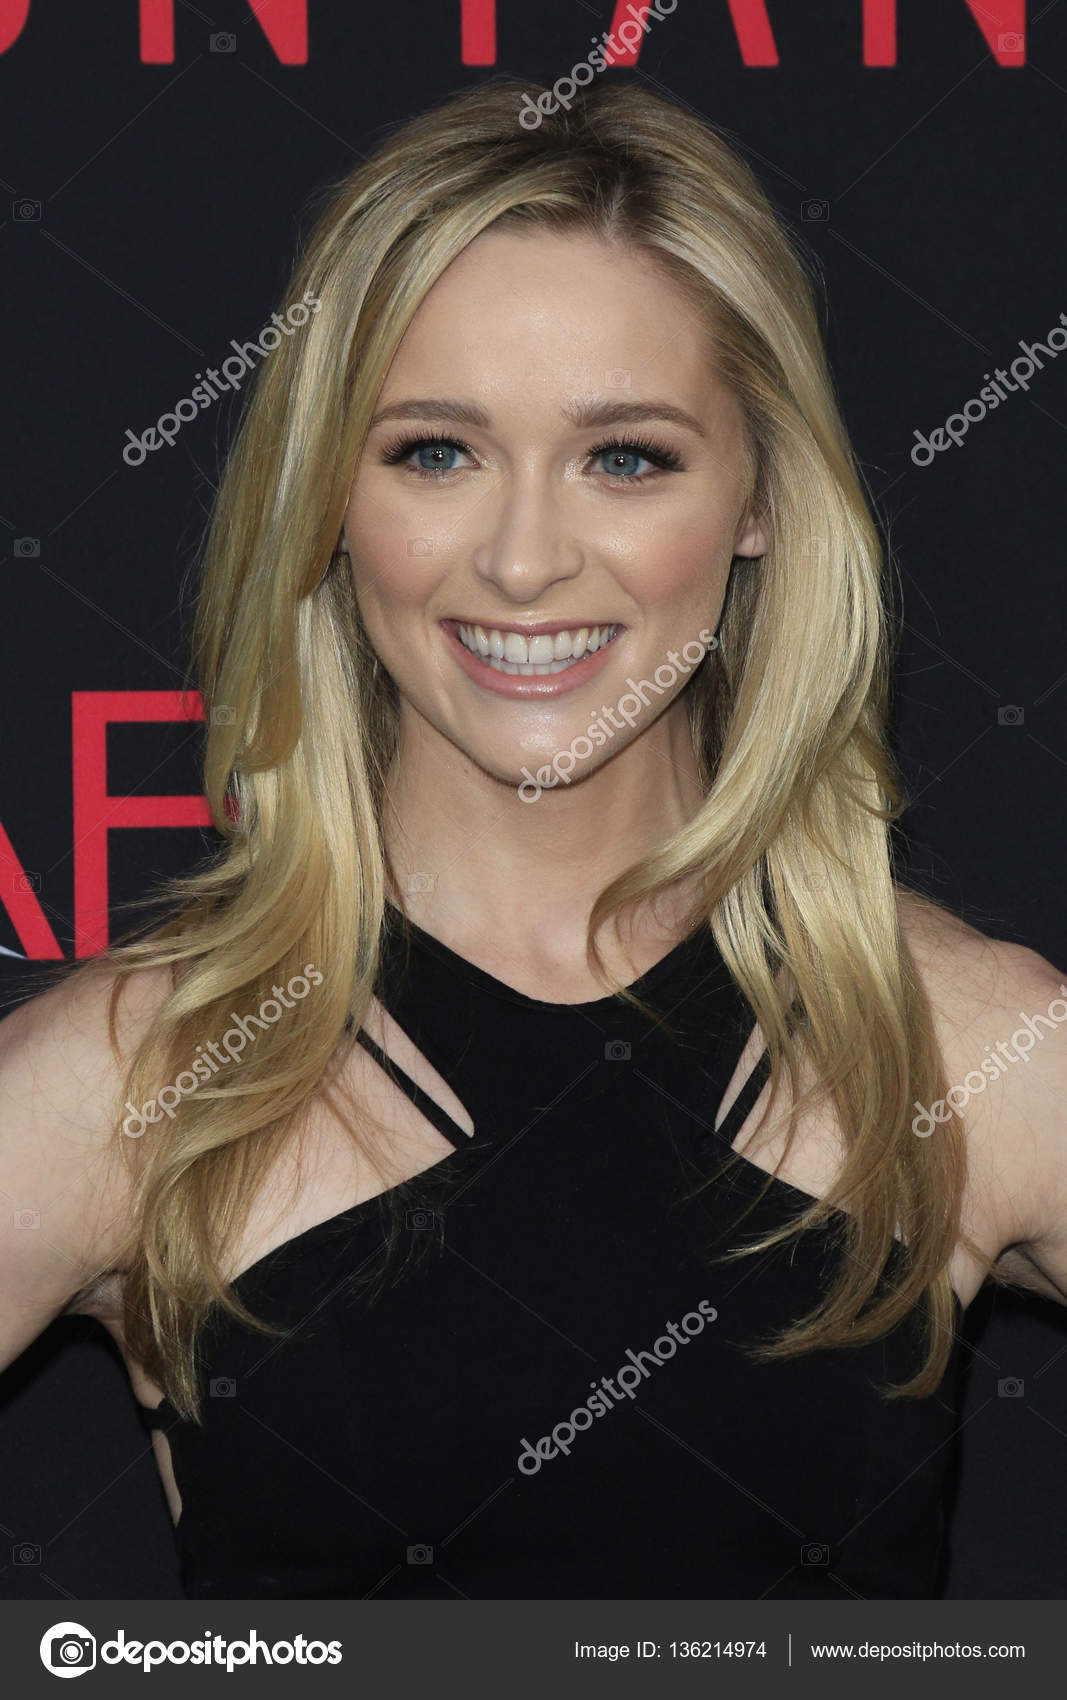 Communication on this topic: Harriet Hammond, greer-grammer/